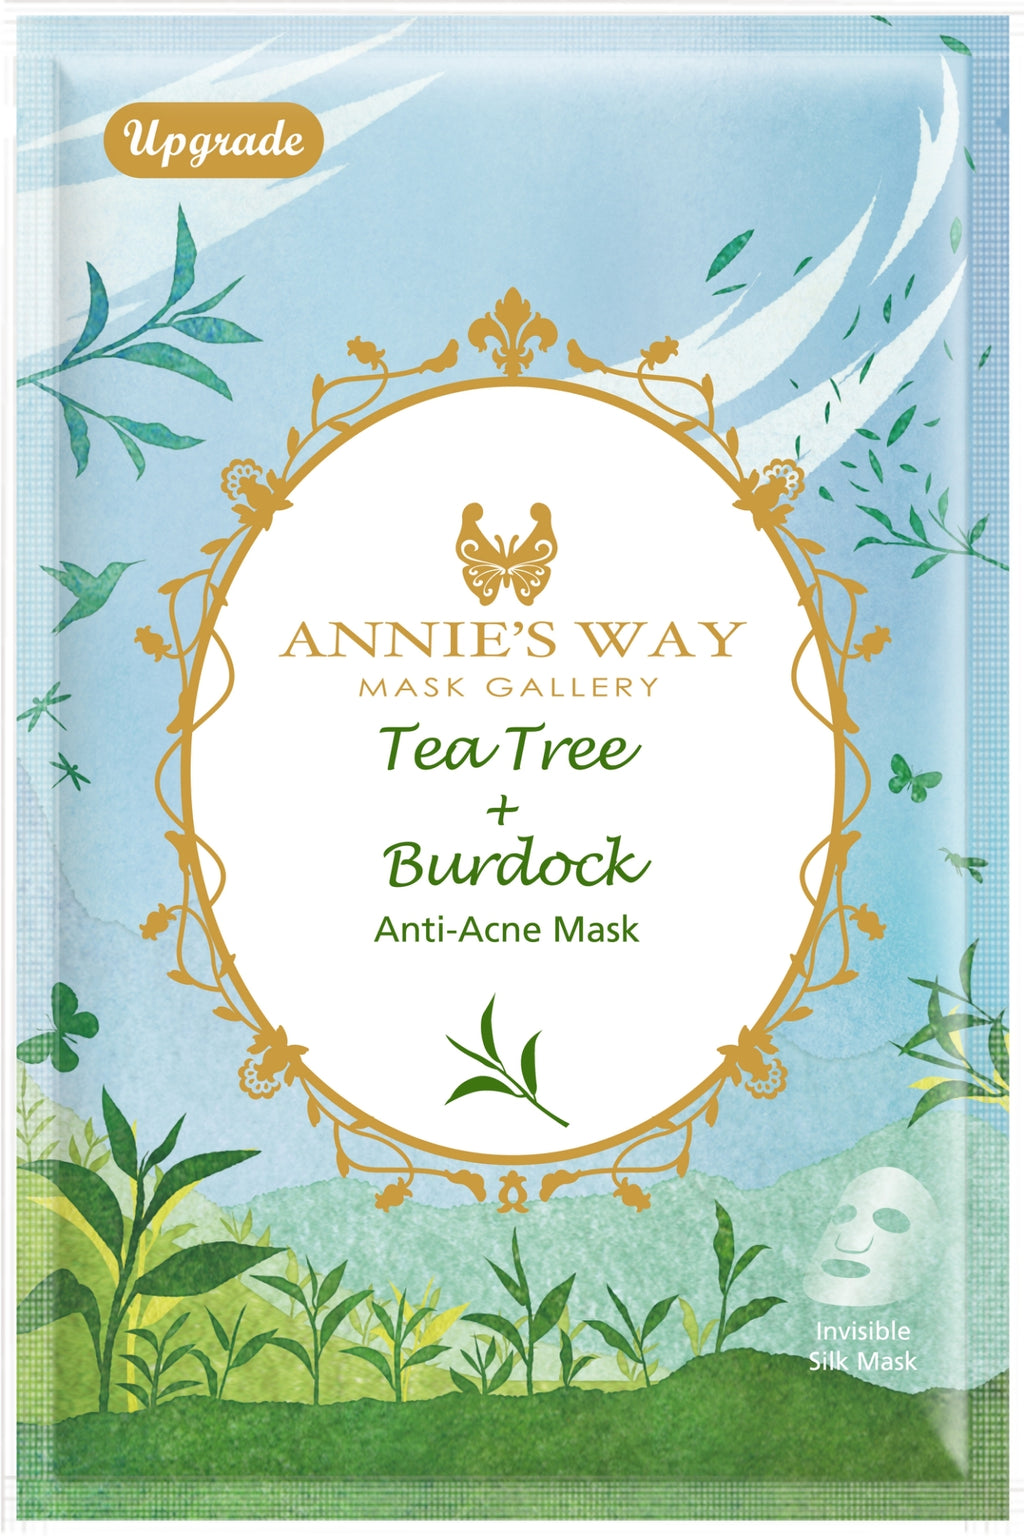 Annie's Way Tea Tree + Burdock Anti-Acne Mask